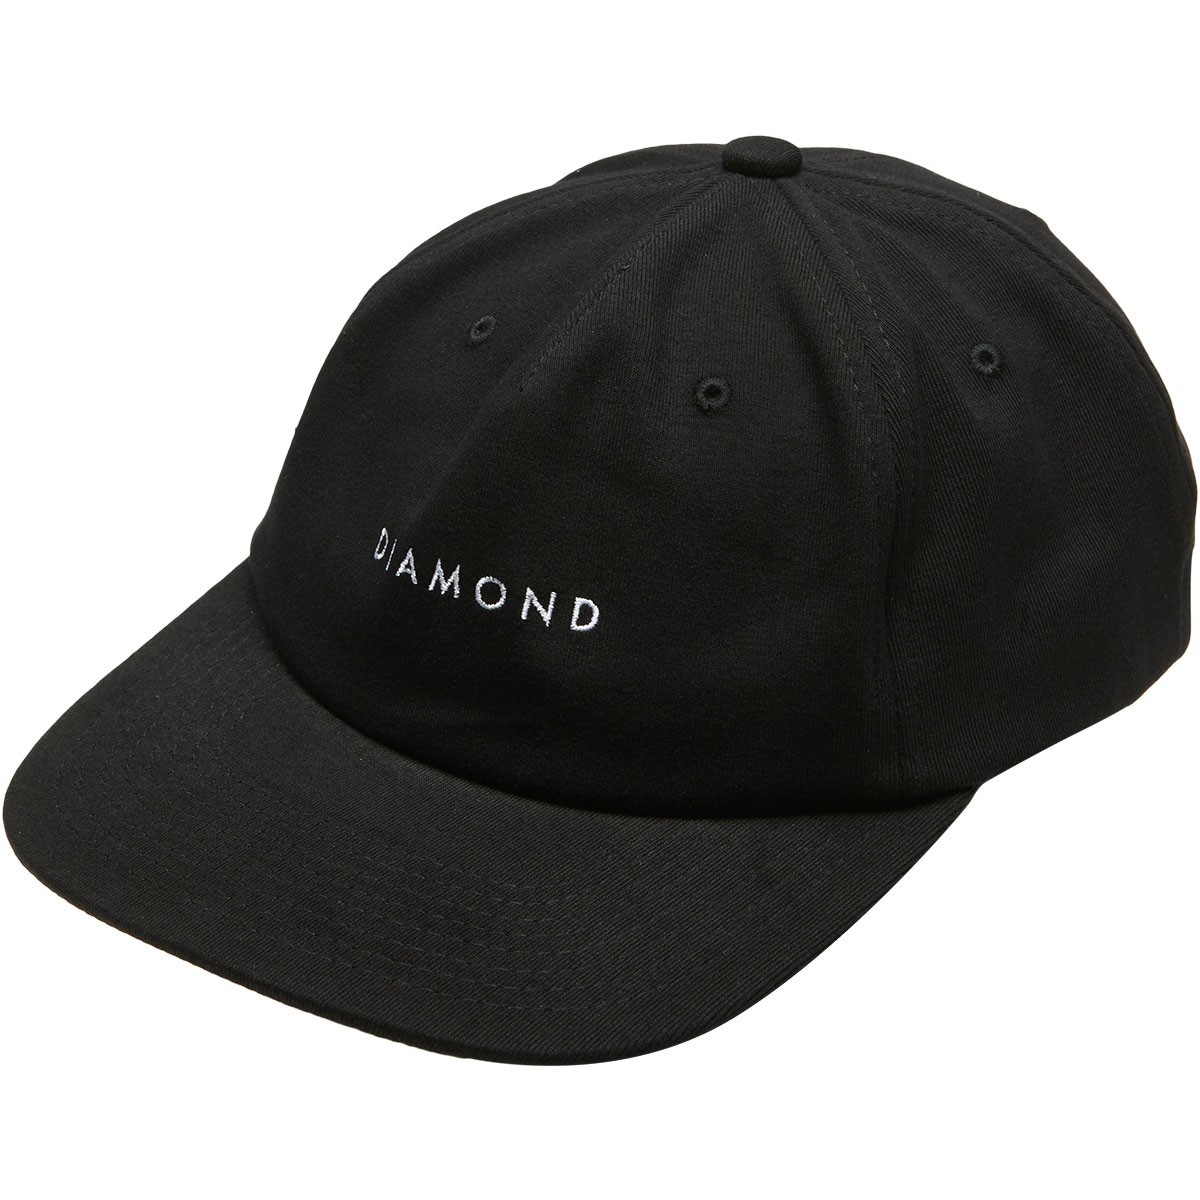 db45c4115a6 Diamond Supply Co. Leeway Unconstructed Snapback Hat - Black